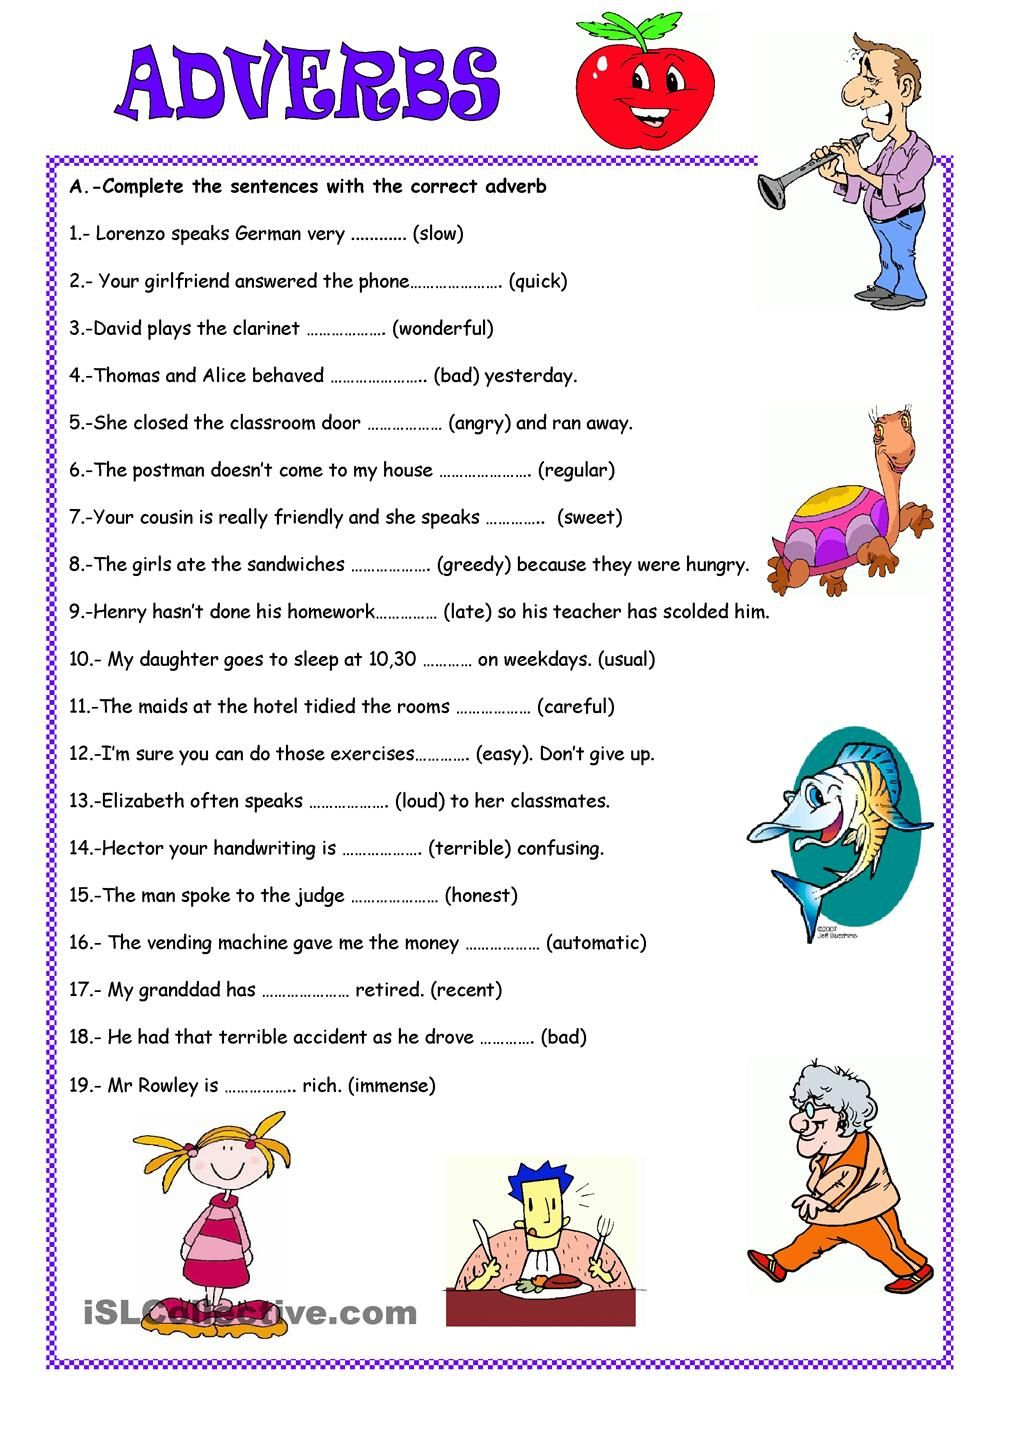 adverbs worksheet Google Search Atividades